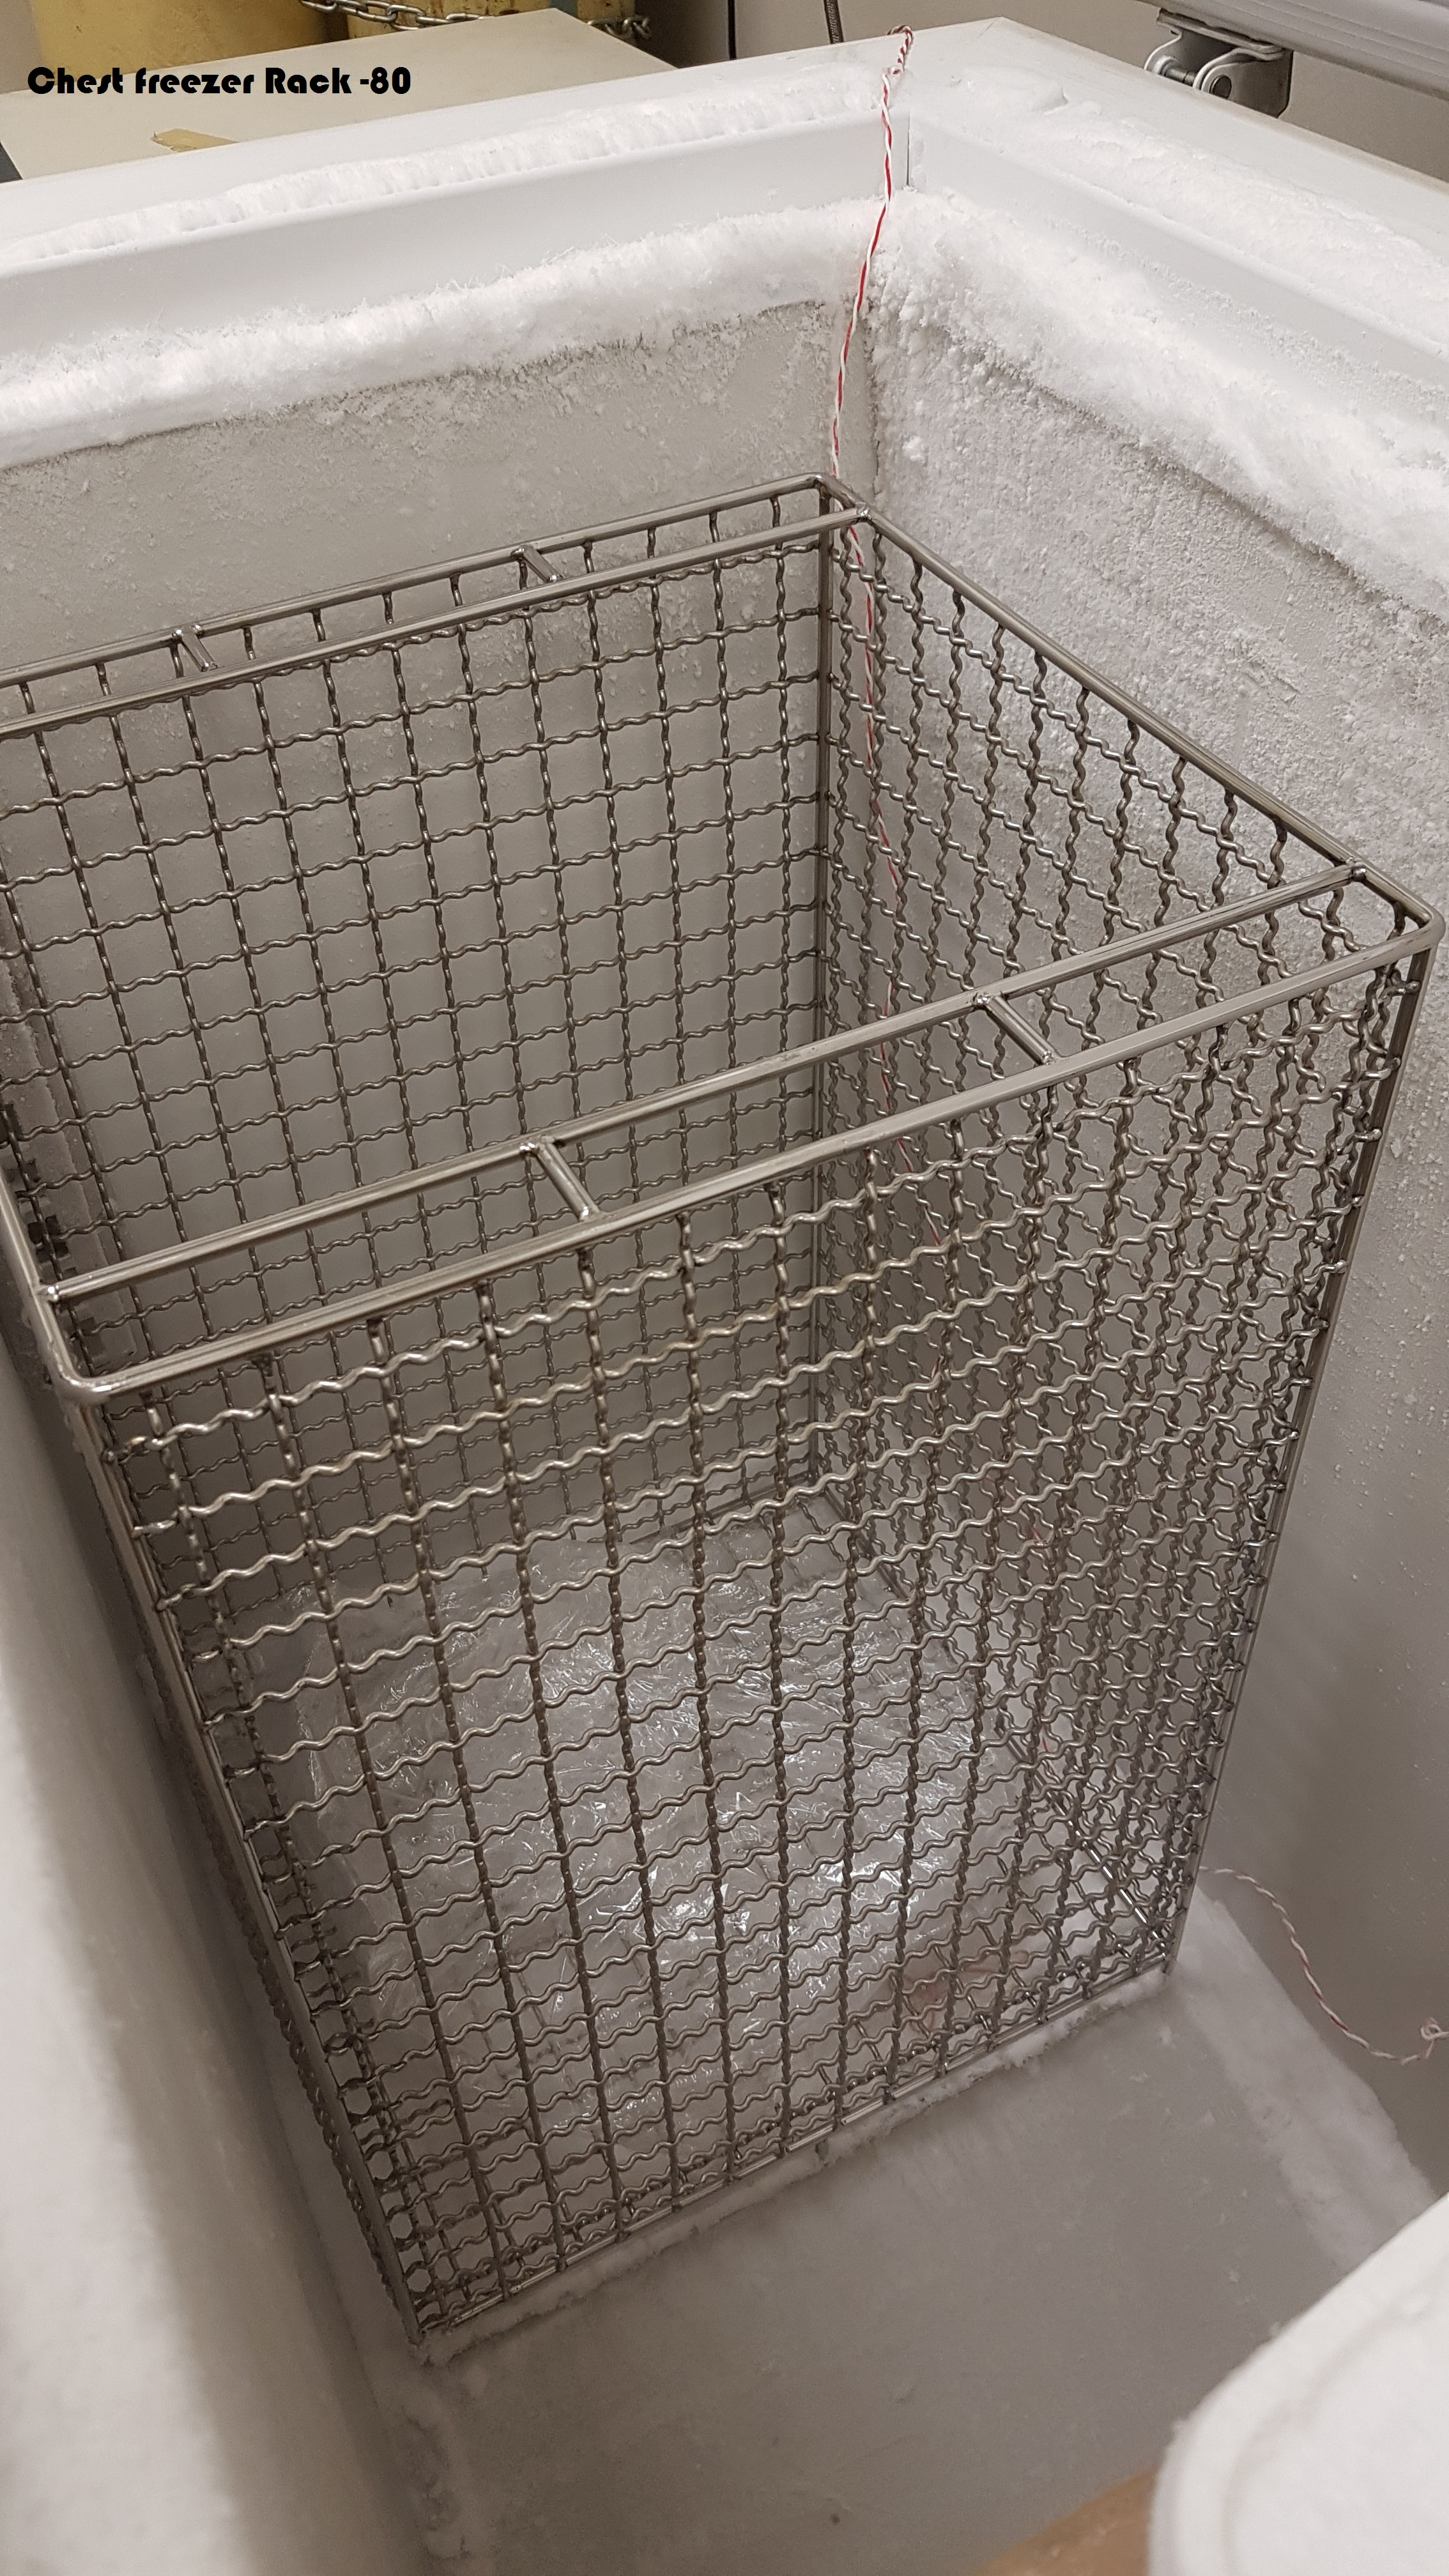 (-80) S/Steel freezer basket